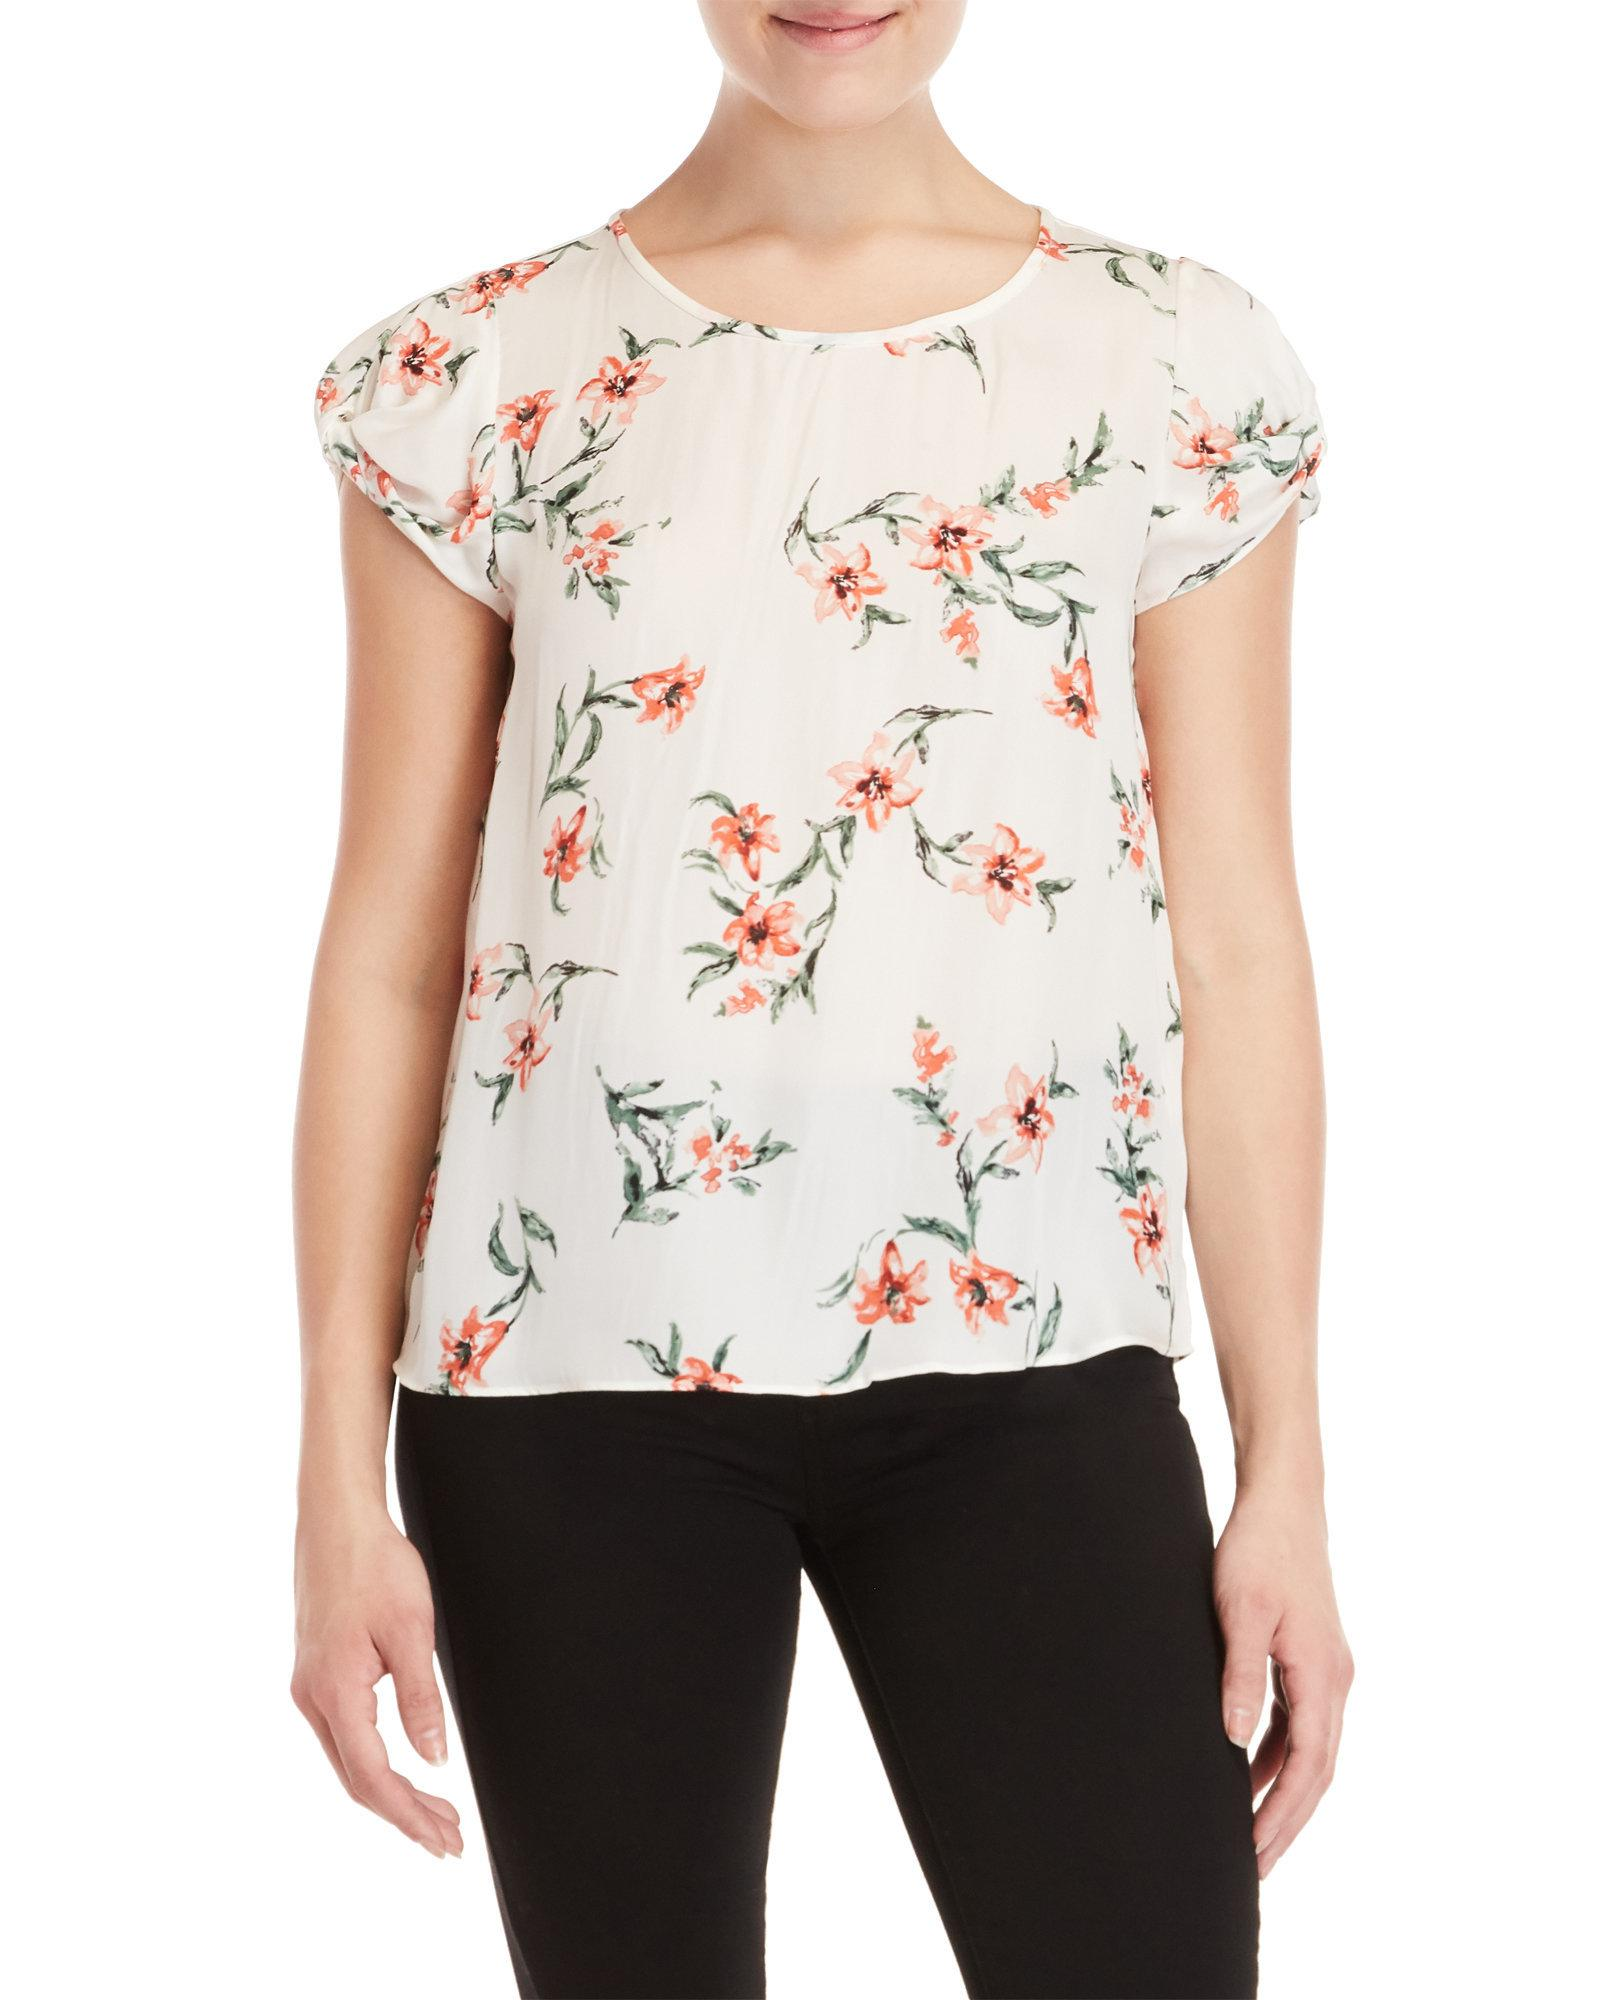 b9f793a36be82 Joie. Women s Elline Floral Top